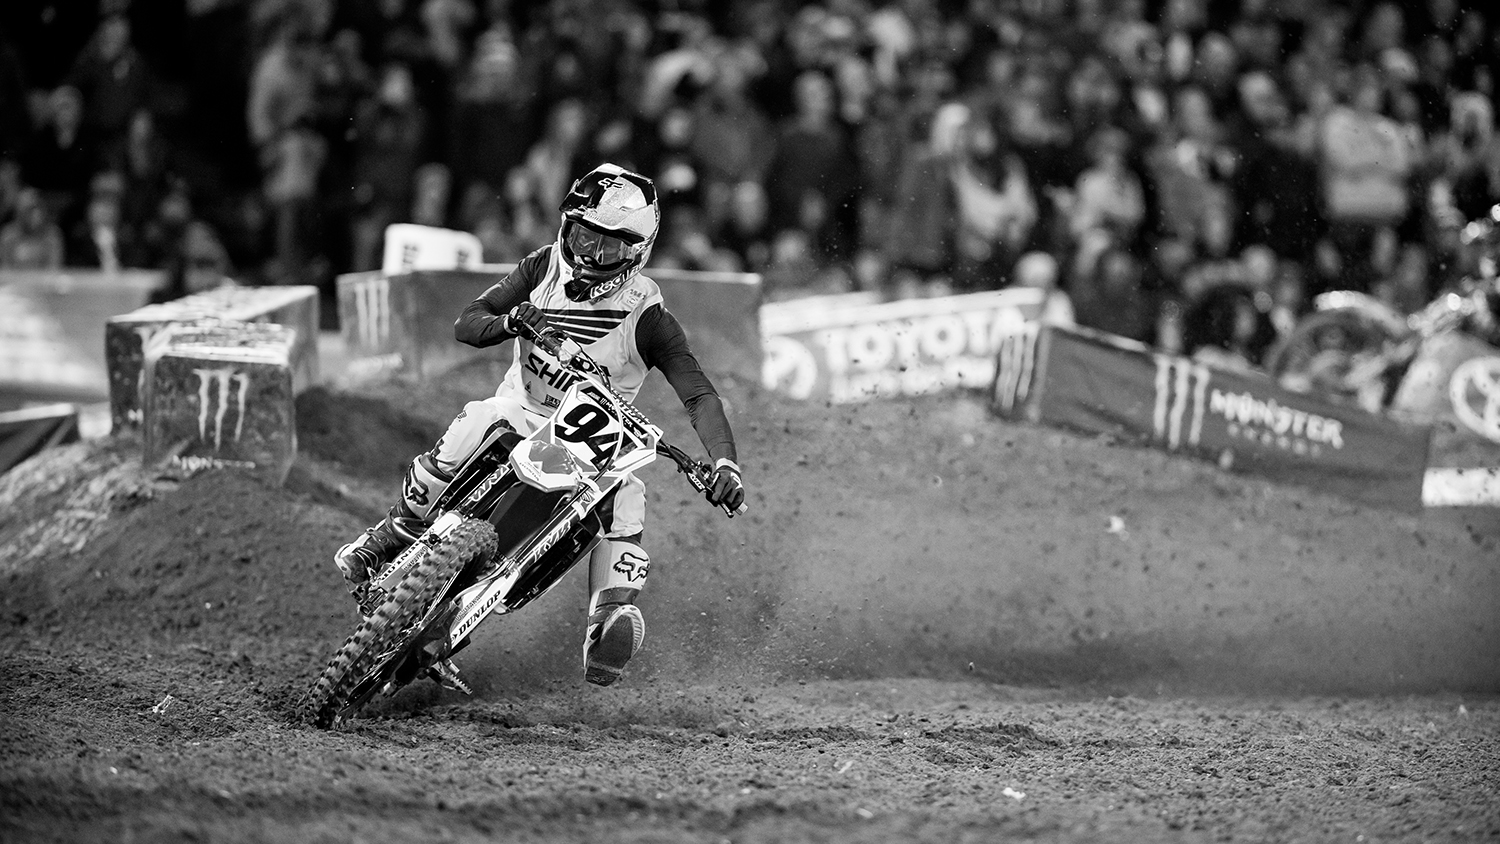 2017 Anaheim One SX | In Black and White | Transworld Motocross